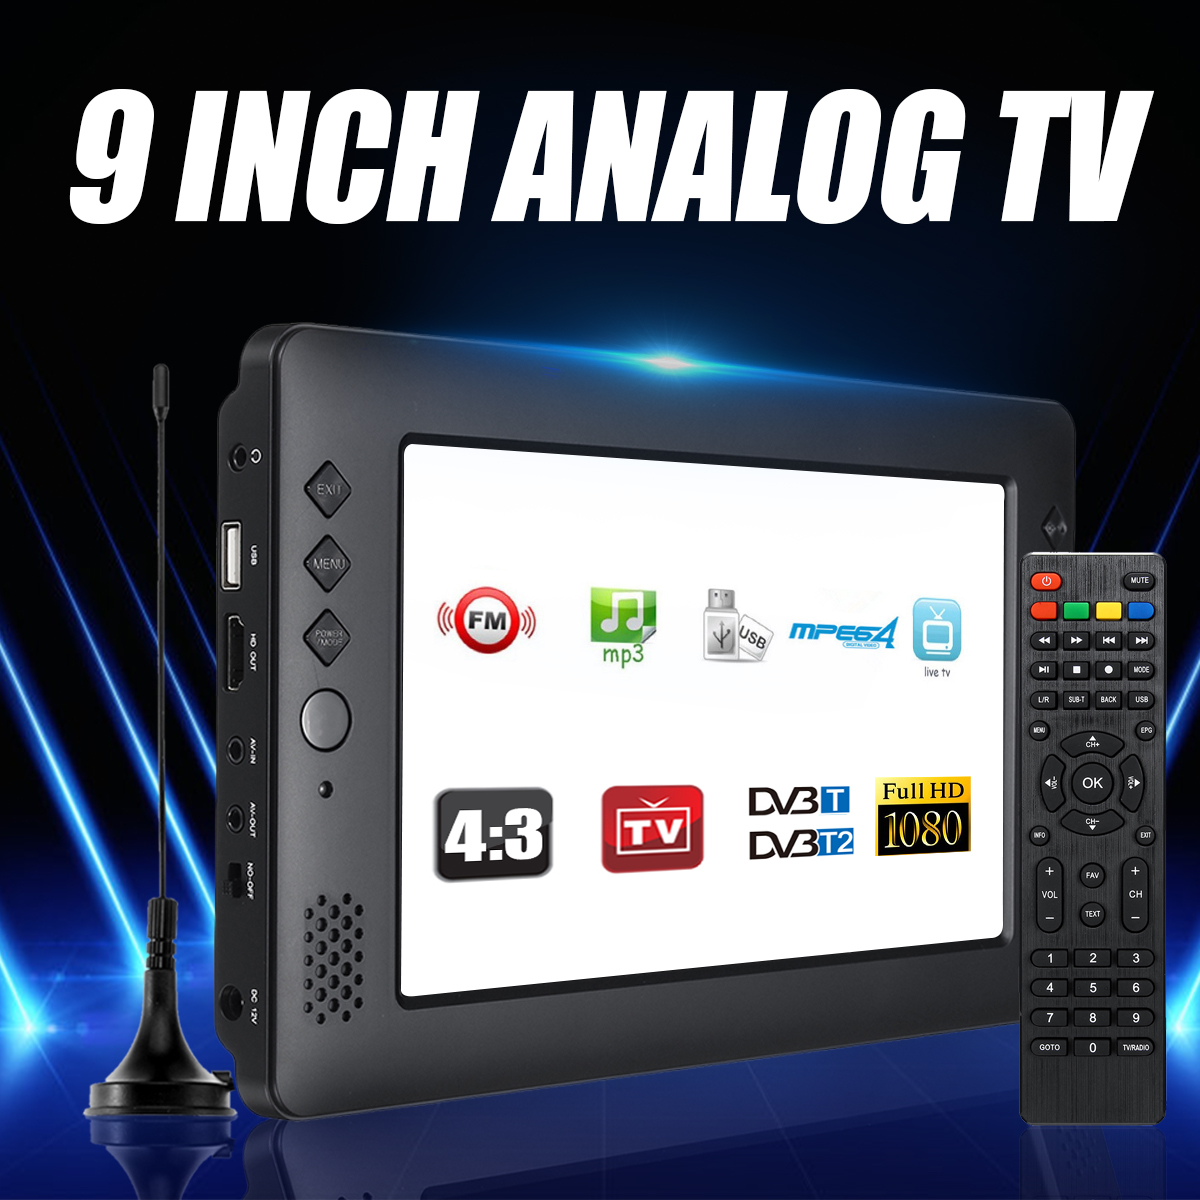 9 Inch Portable Mini TV DVB-T/T2 DTV FM HD 1080P H.265 Digital And Analog Led Televisions Support MP4 AC3 HDMI Monitor